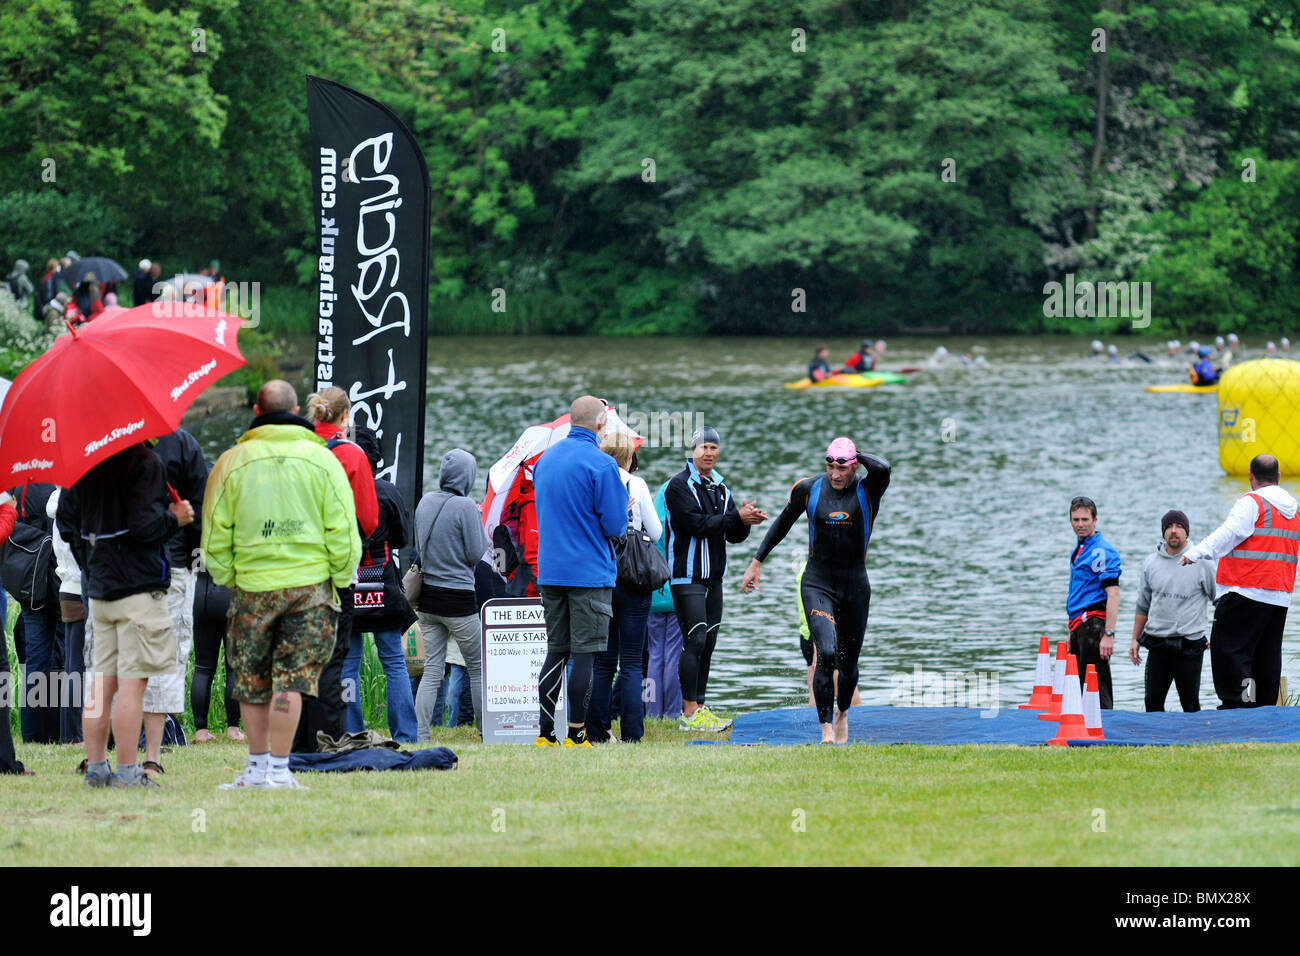 A swimmer 'in transition' between the swim and bike sections of the 2010 'Little Beaver' triathlon, - Stock Image